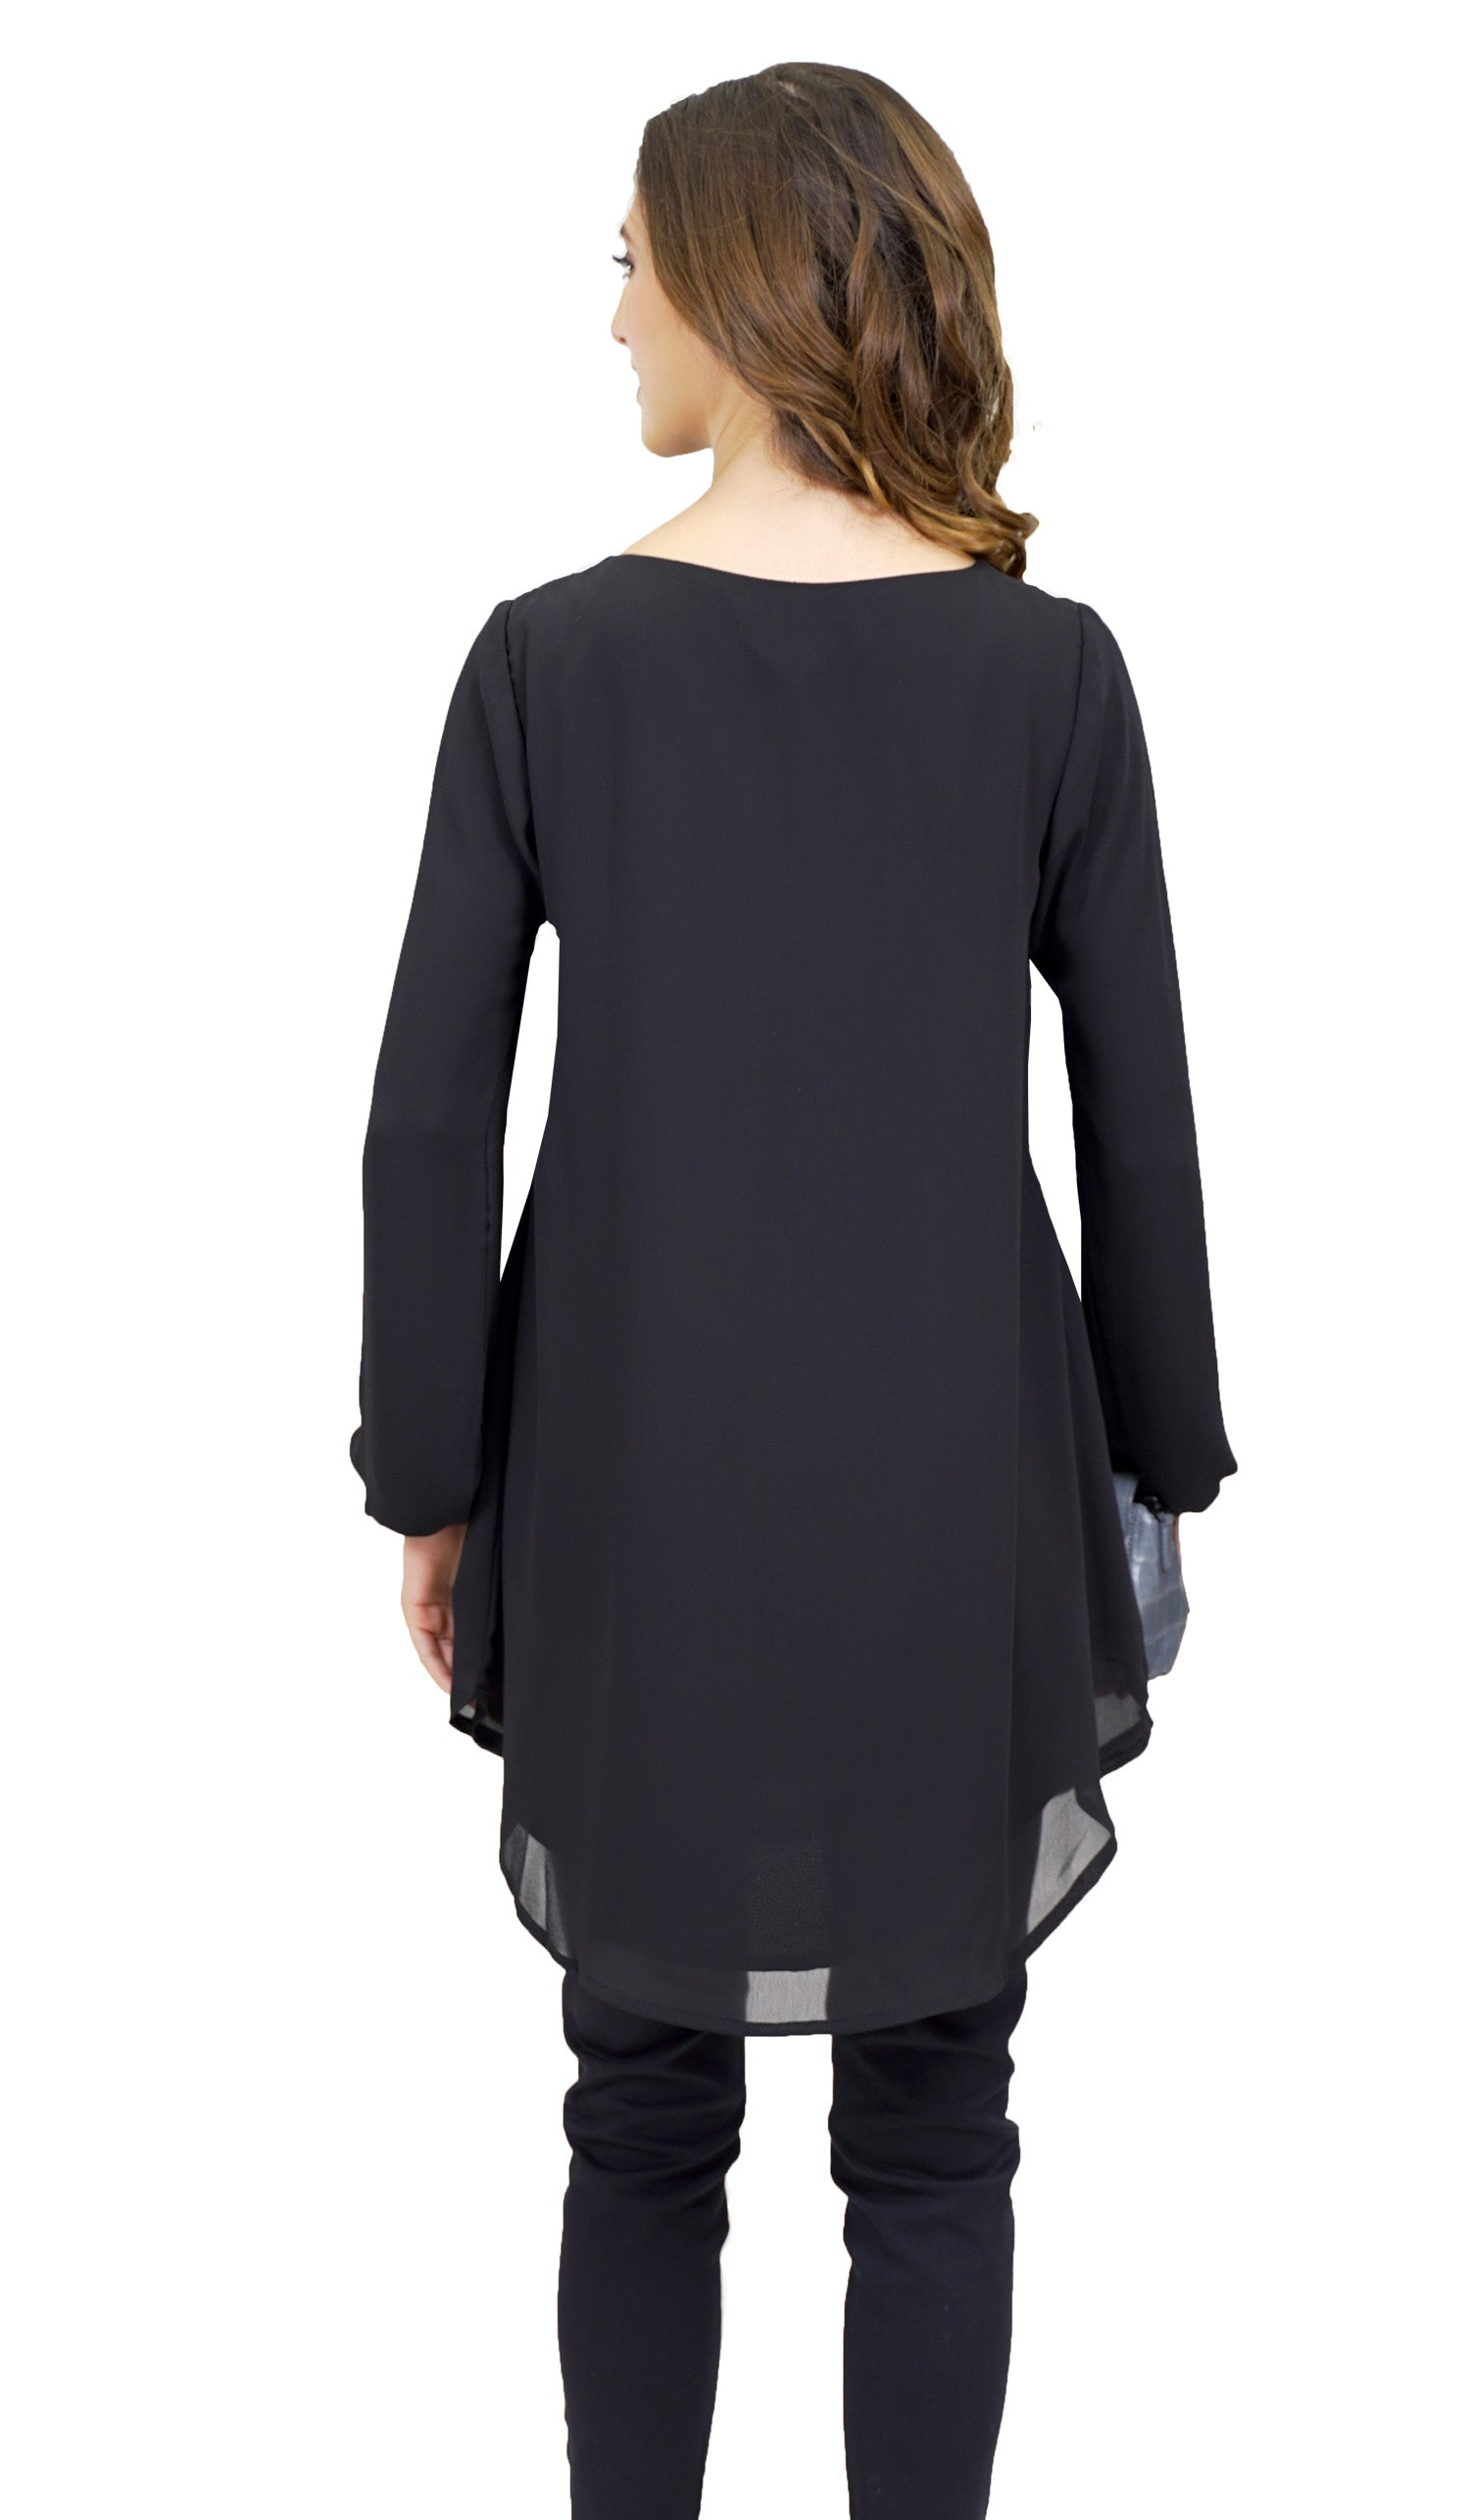 Suroor Embroidered Long Modest Tunic - Black